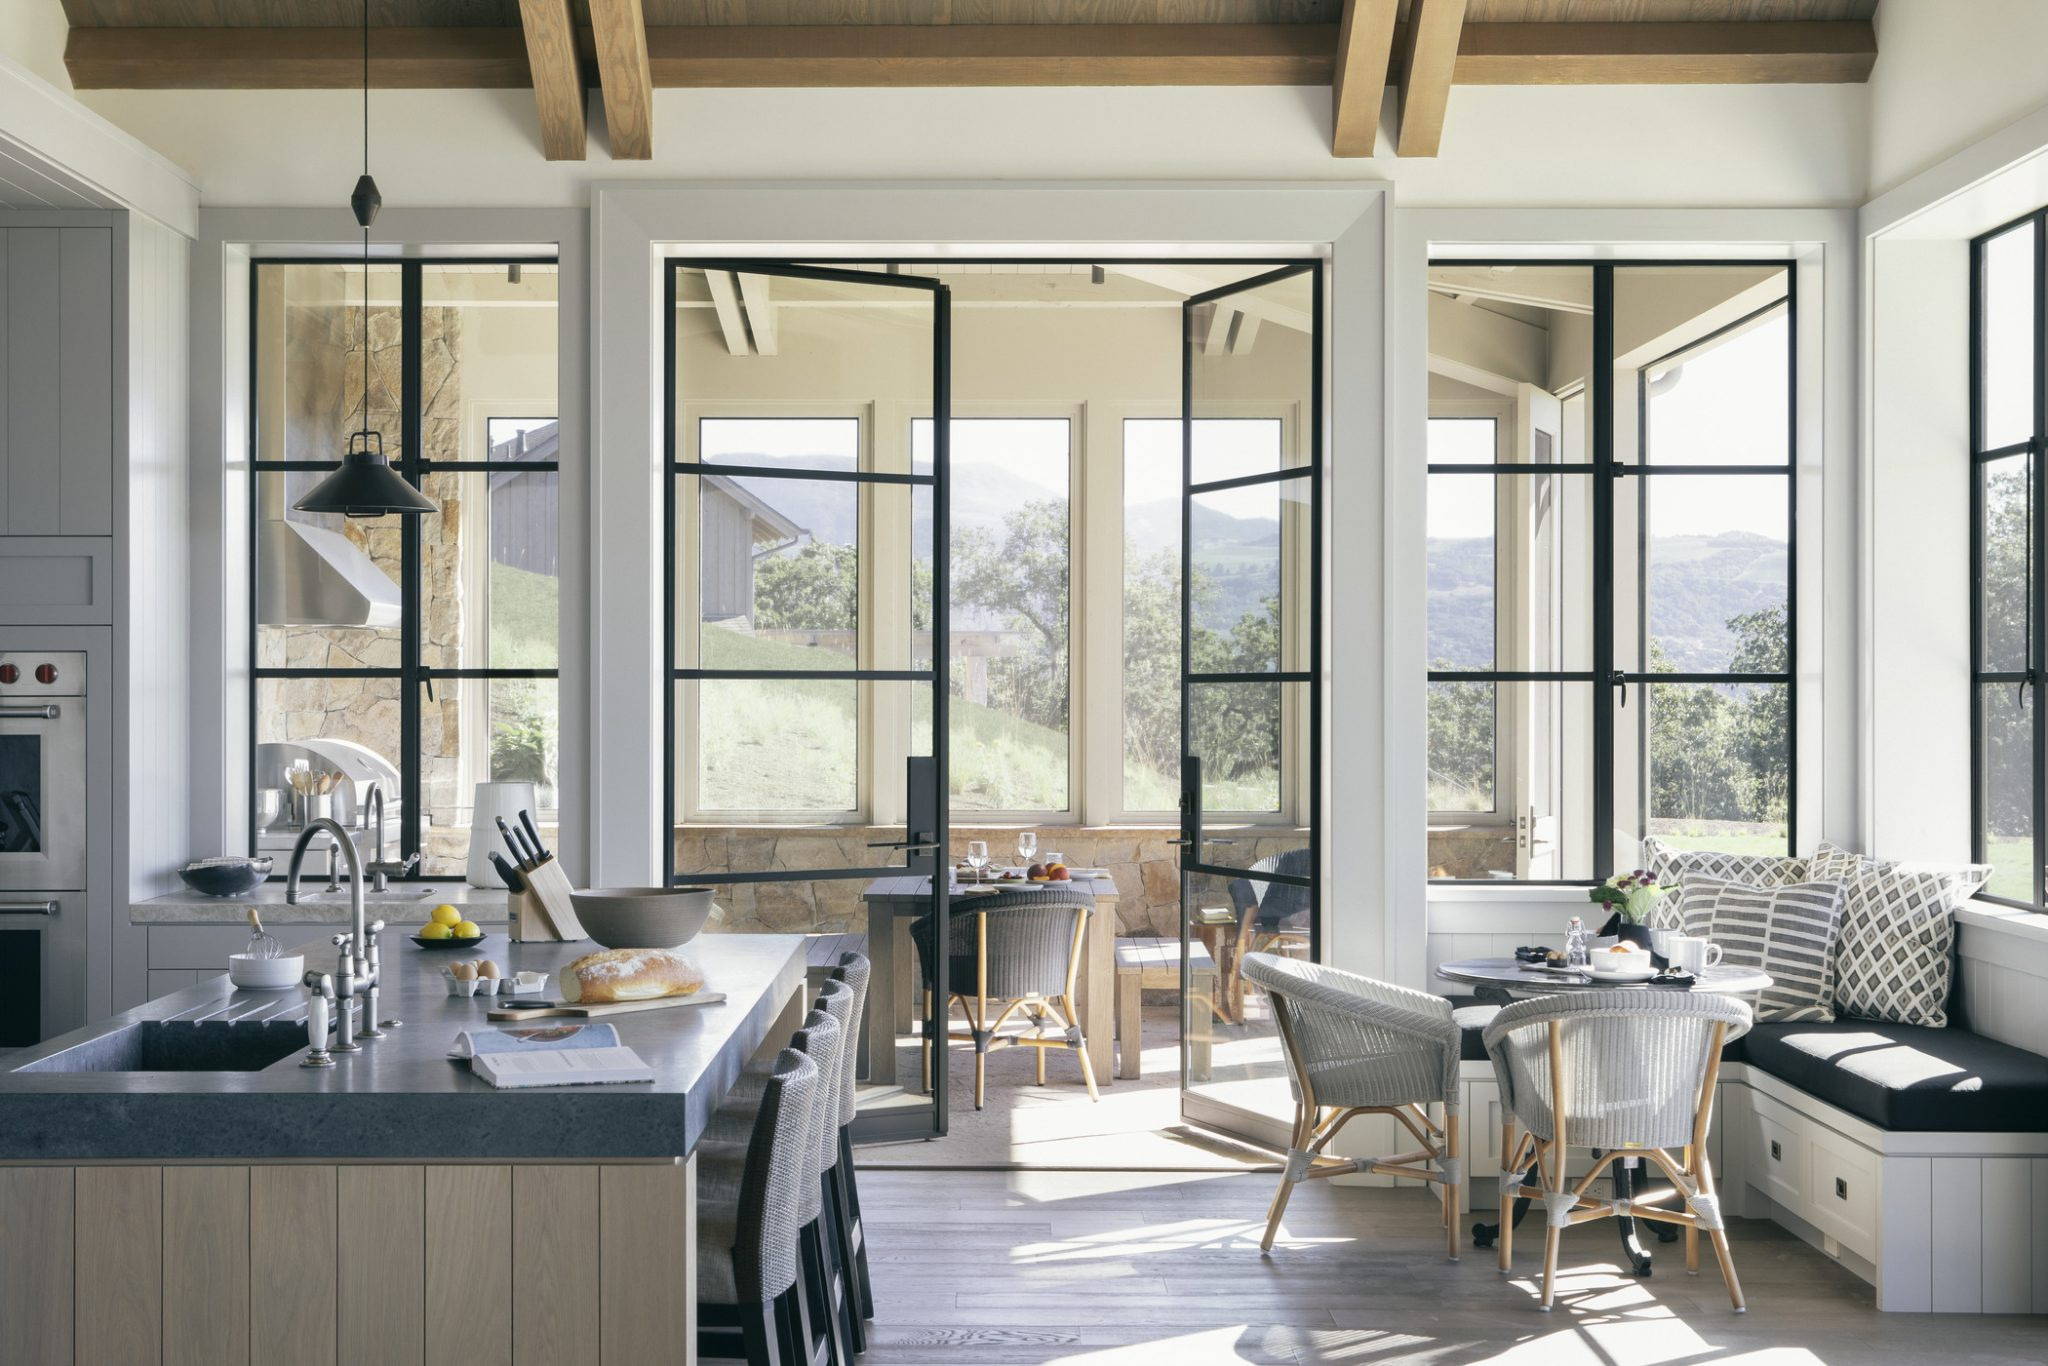 Indoors, the layout is fairly open, with a central axis that runs through the center of the home and extends outward on both ends. High, beamed ceilings enhance the large scale of the space.